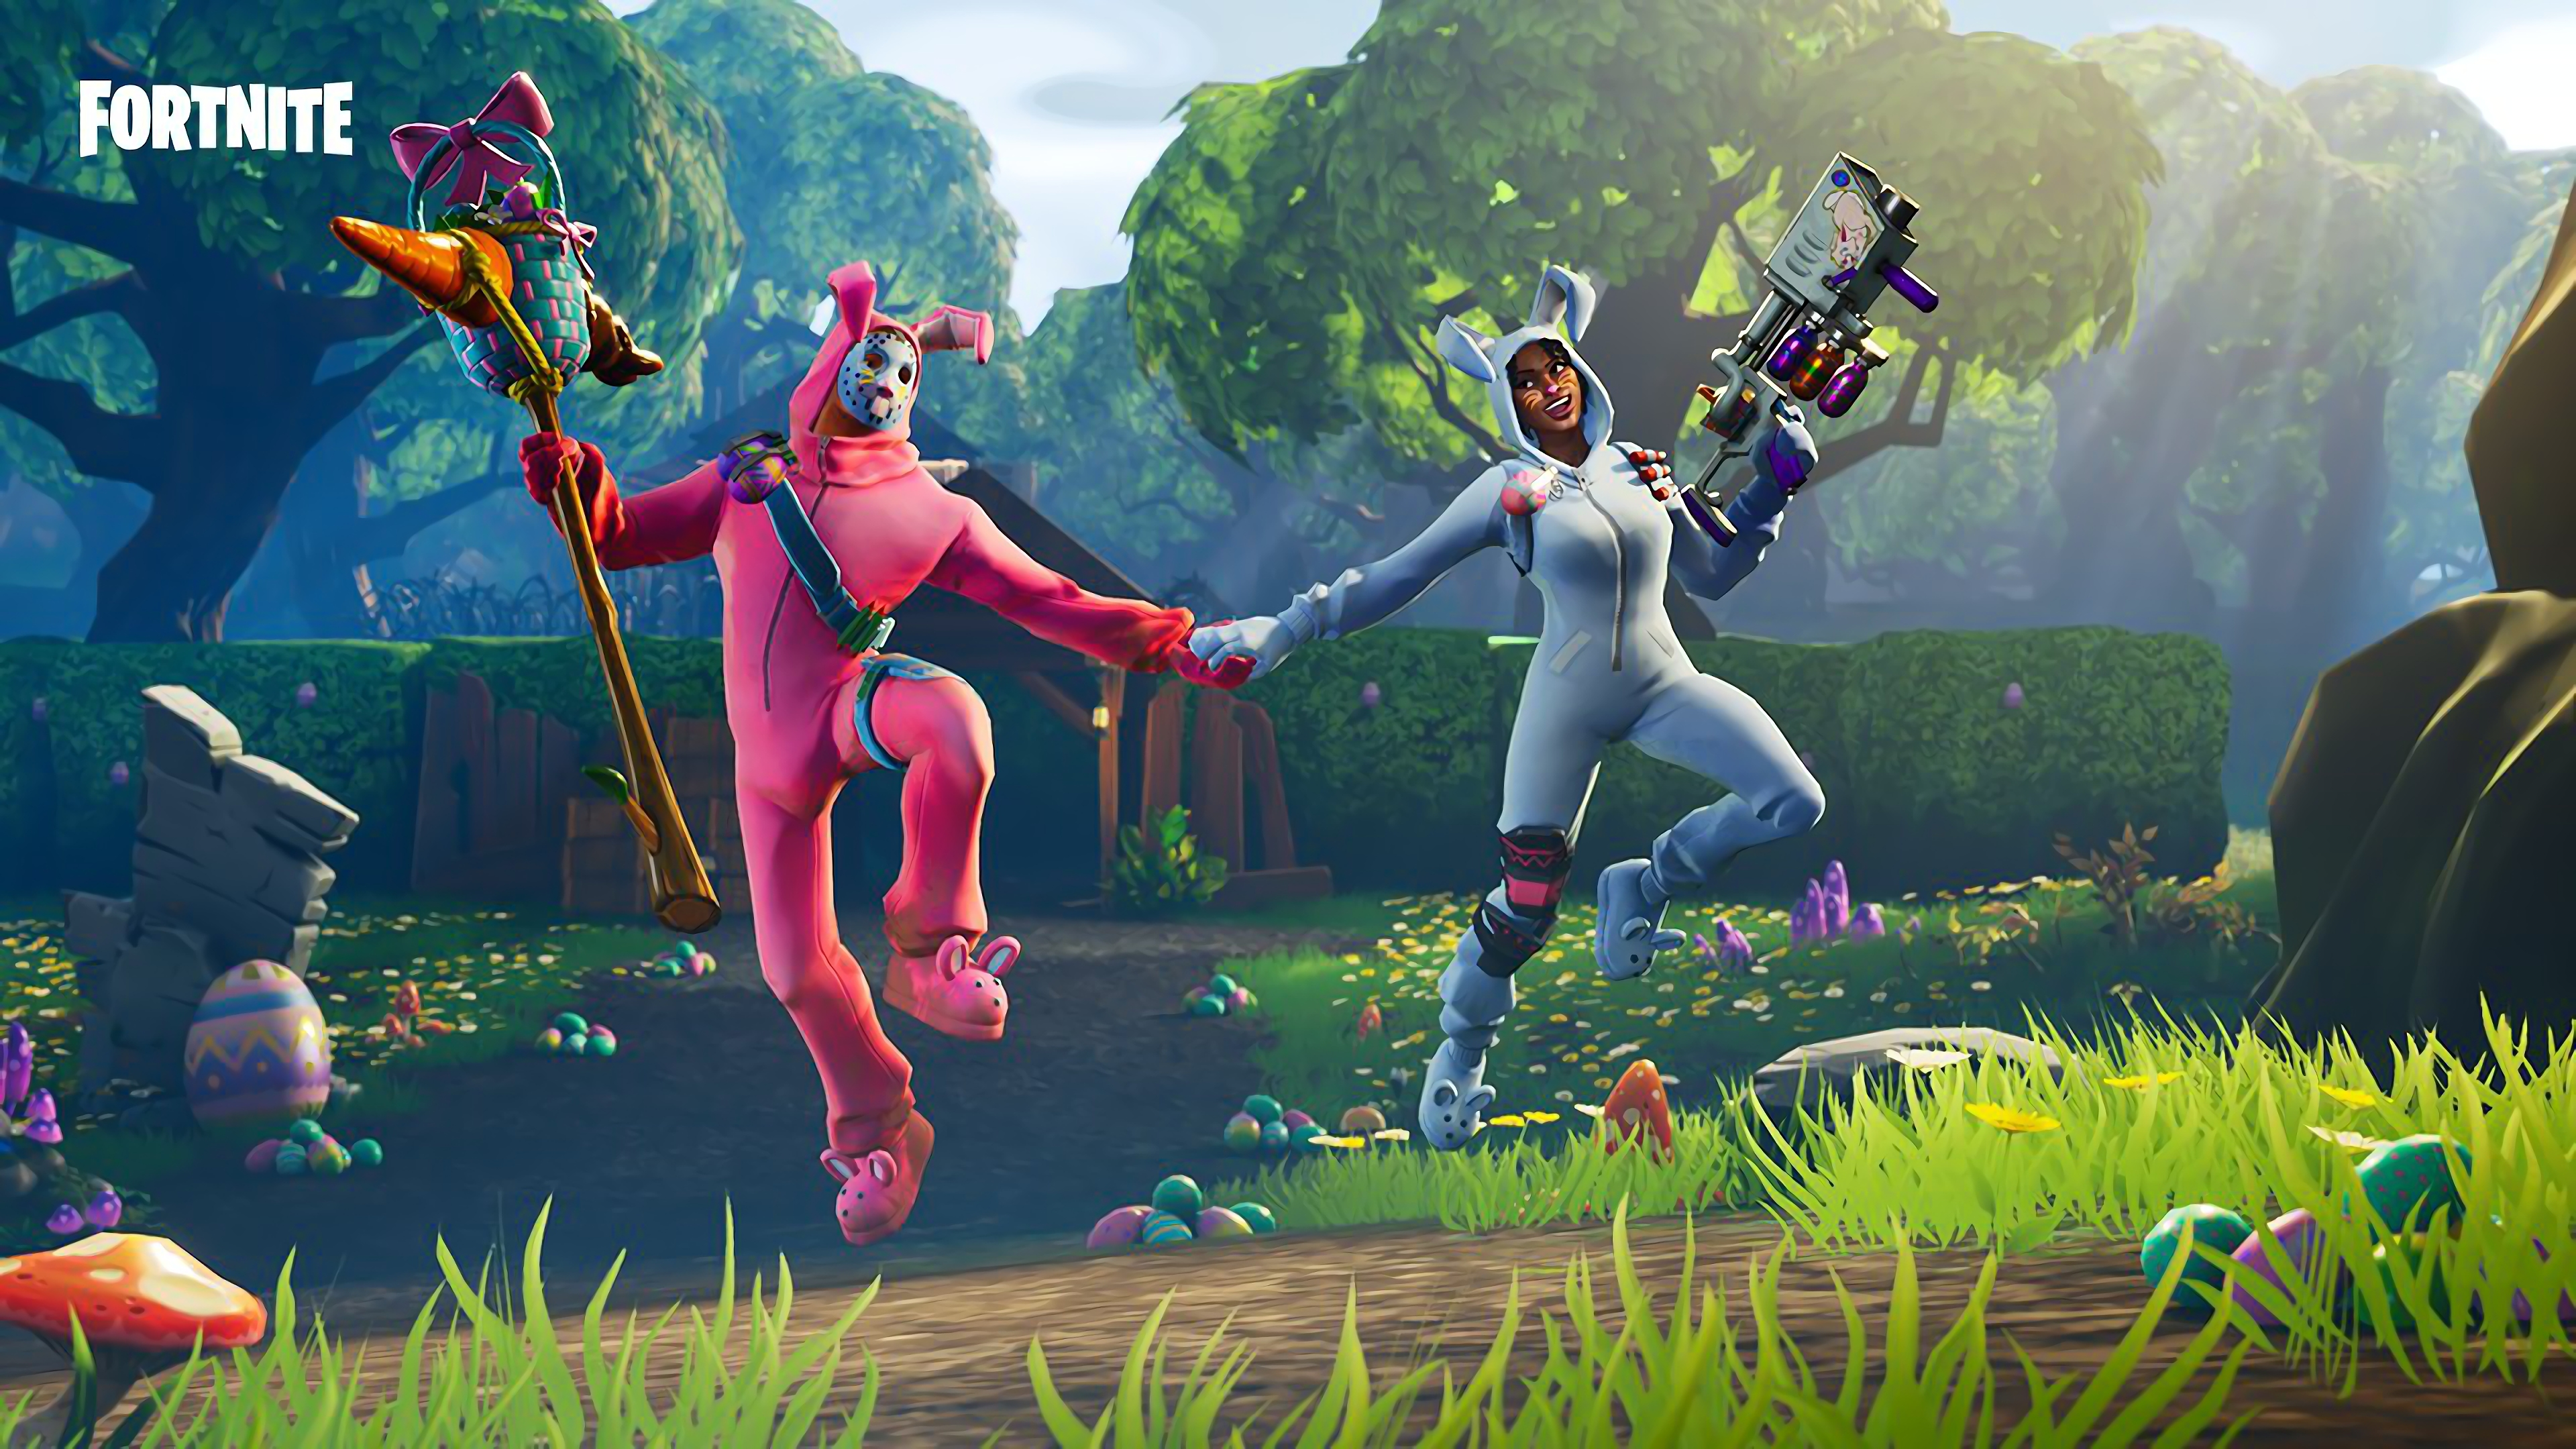 Fortnite Edited Pictures